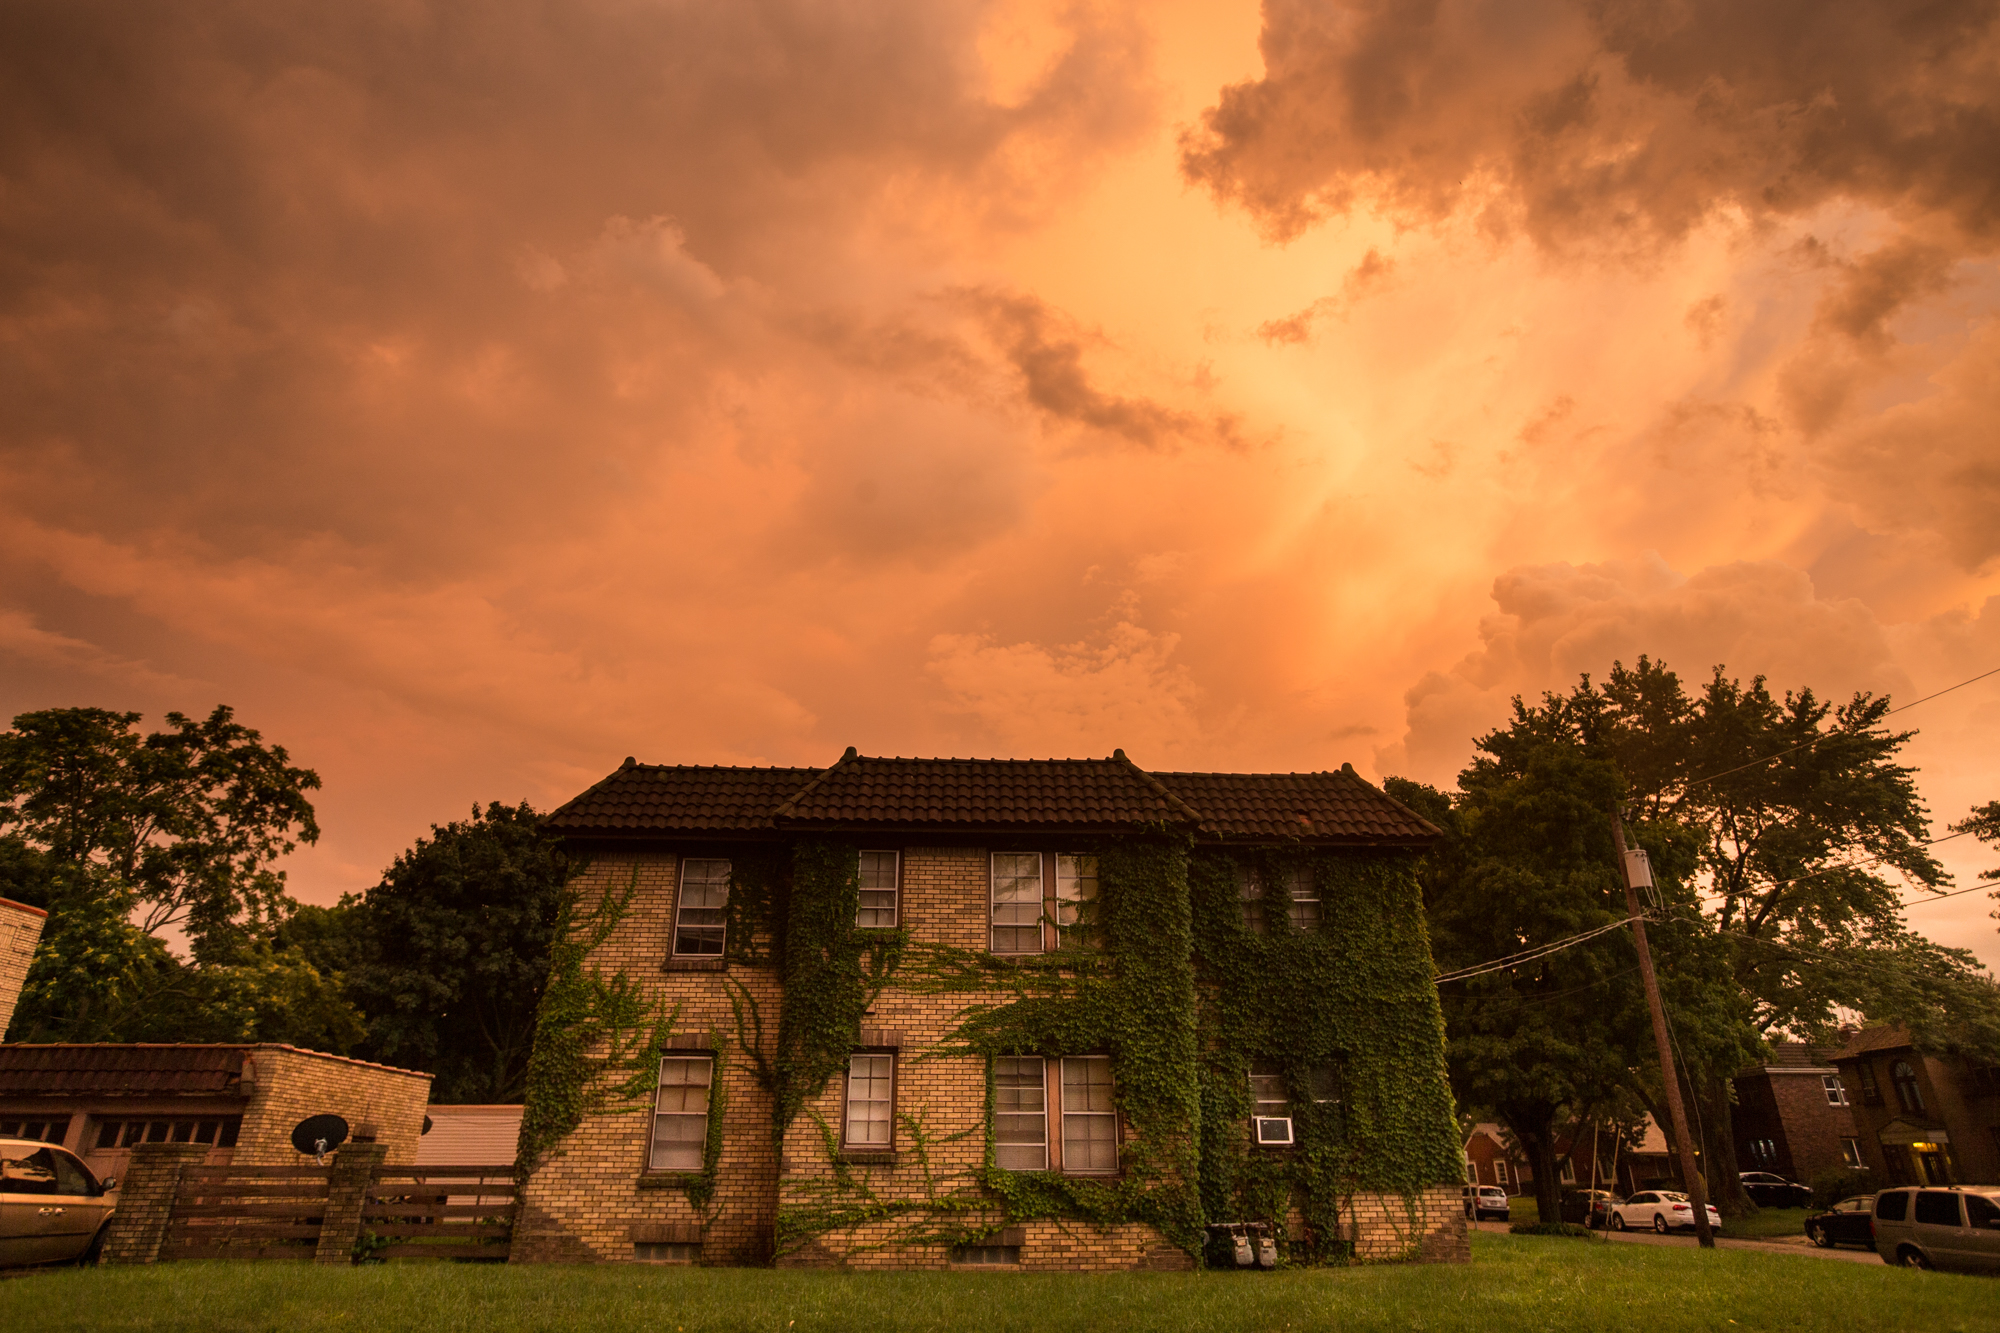 The setting sun casts an orange-red hue over Rockford's North End following an evening thunderstorm on Thursday, Aug. 9, 2018. [SCOTT P. YATES/RRSTAR.COM STAFF]